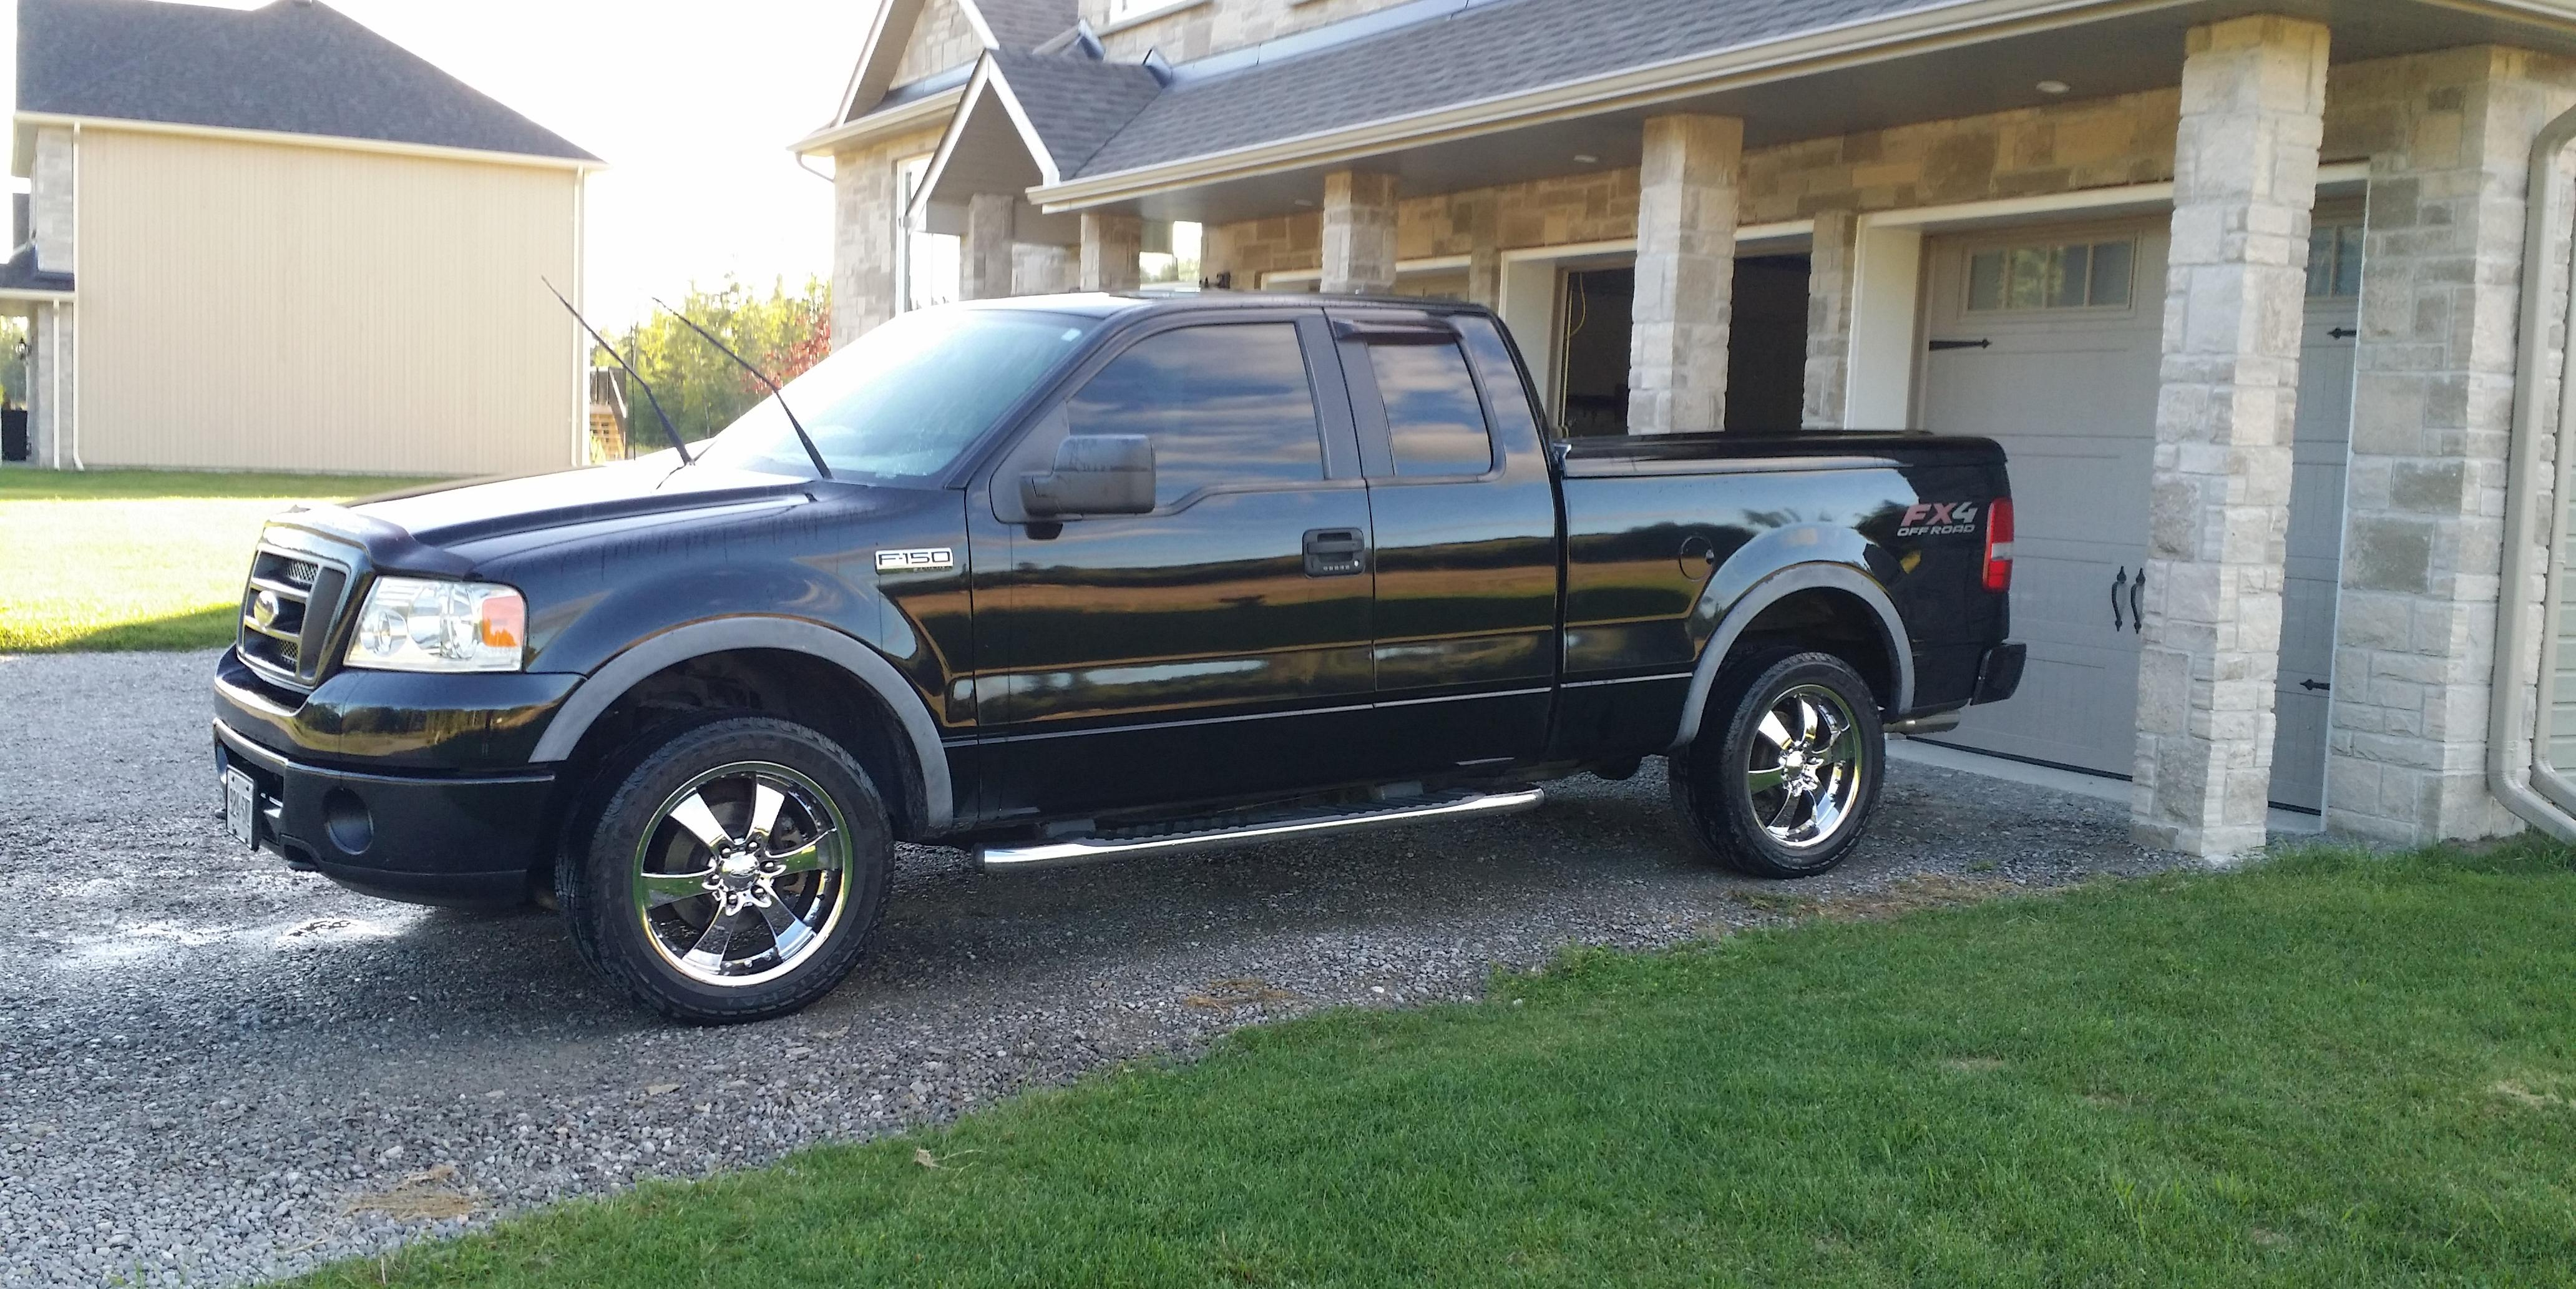 mach1eh 2006 ford f150 super cabfx4 pickup 4d 6 1 2 ft specs photos modification info at cardomain. Black Bedroom Furniture Sets. Home Design Ideas